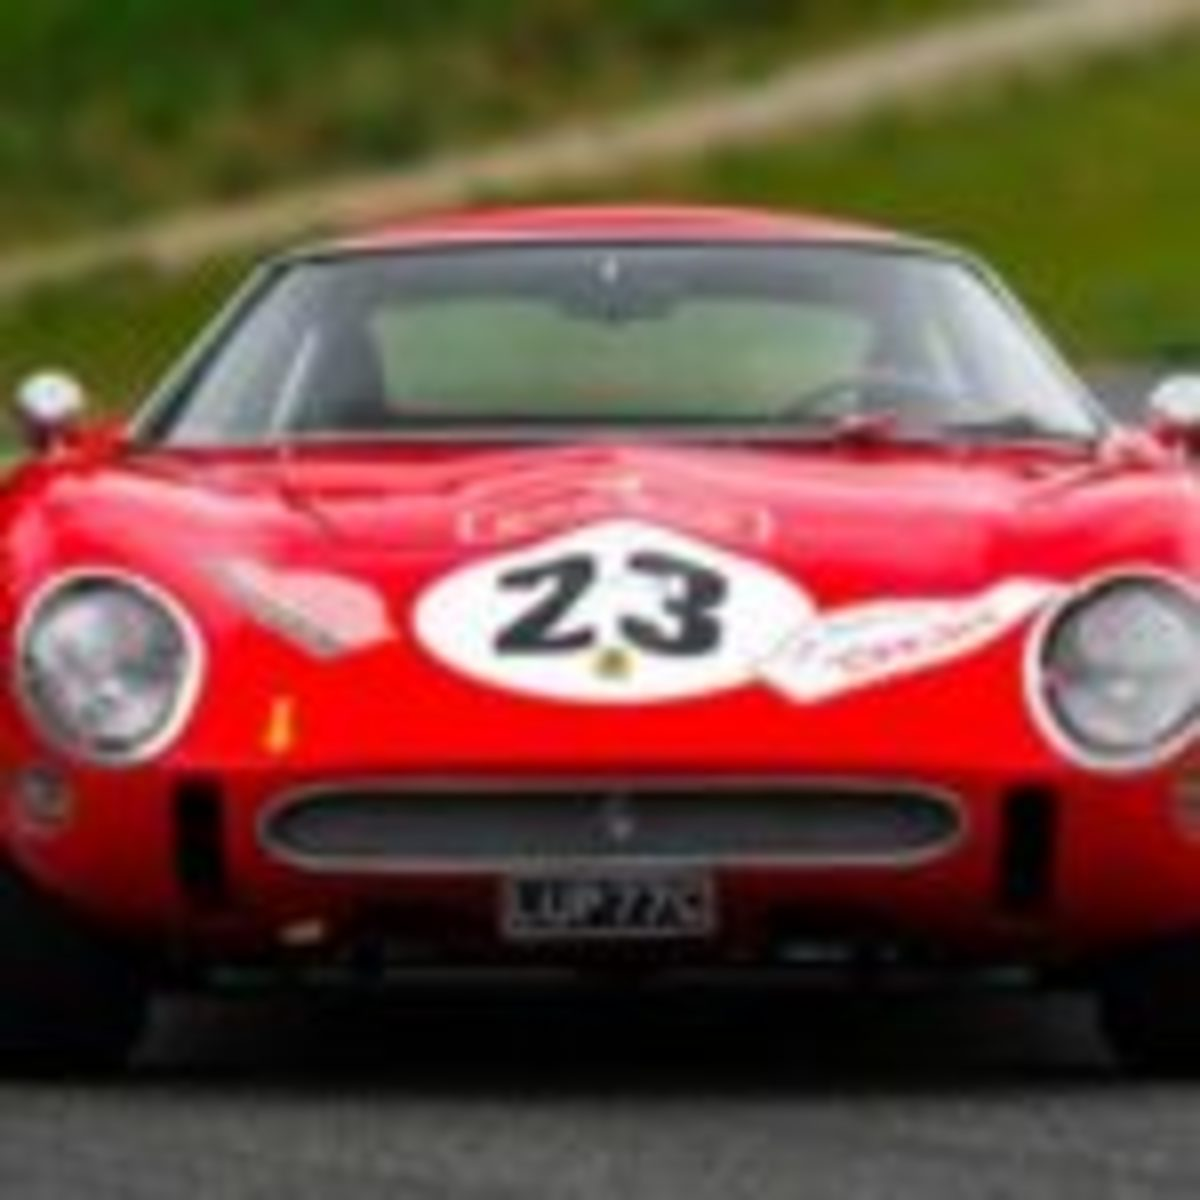 A good example of the strength of this sector is the 1962 Ferrari 250 GTO, which sold at auction in August 2018 for a record US $48 million. Photo courtesy RM Sotheby's